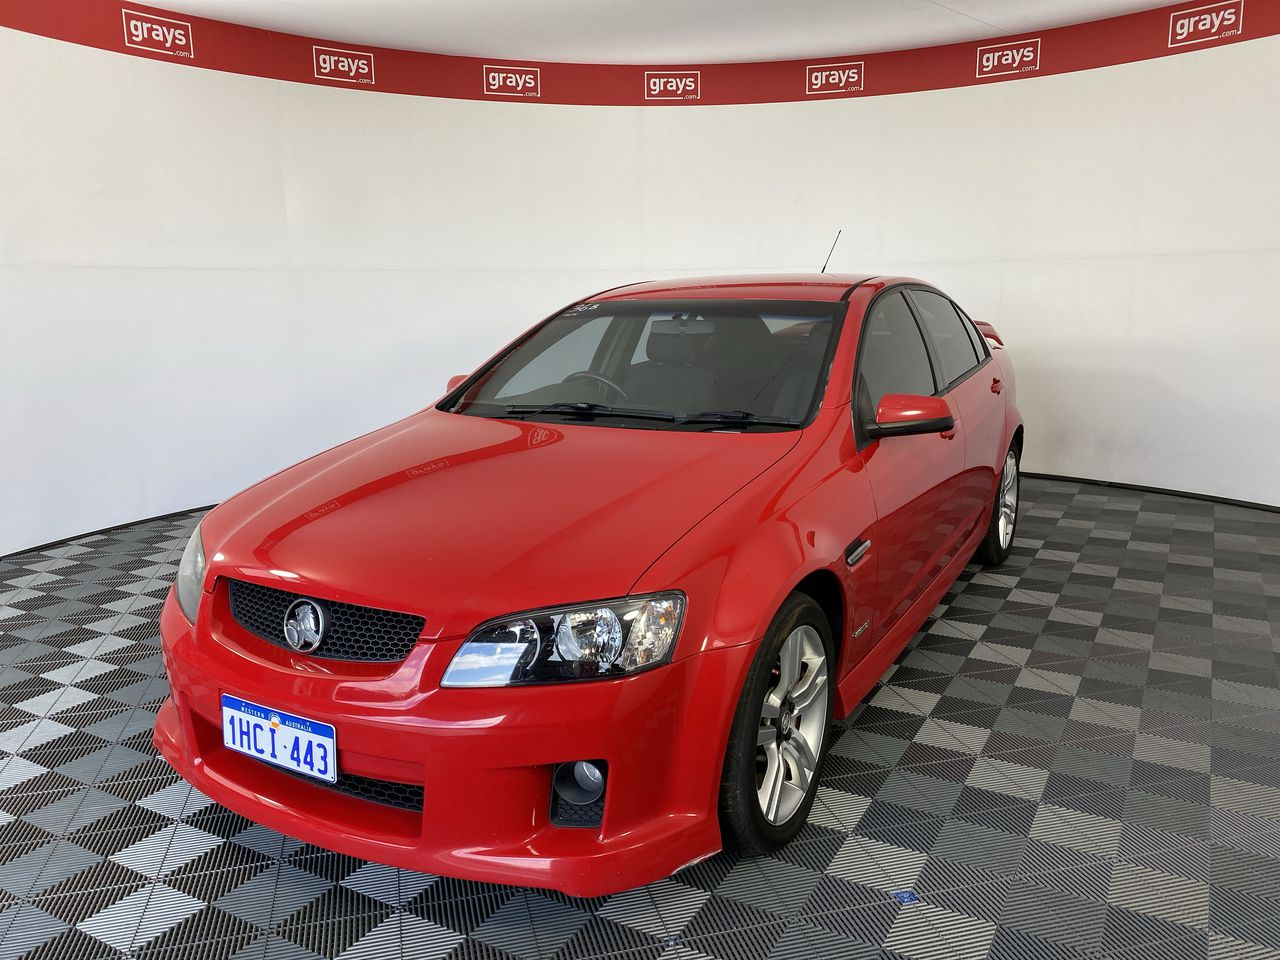 2010 Holden Commodore SV6 VE Automatic Sedan